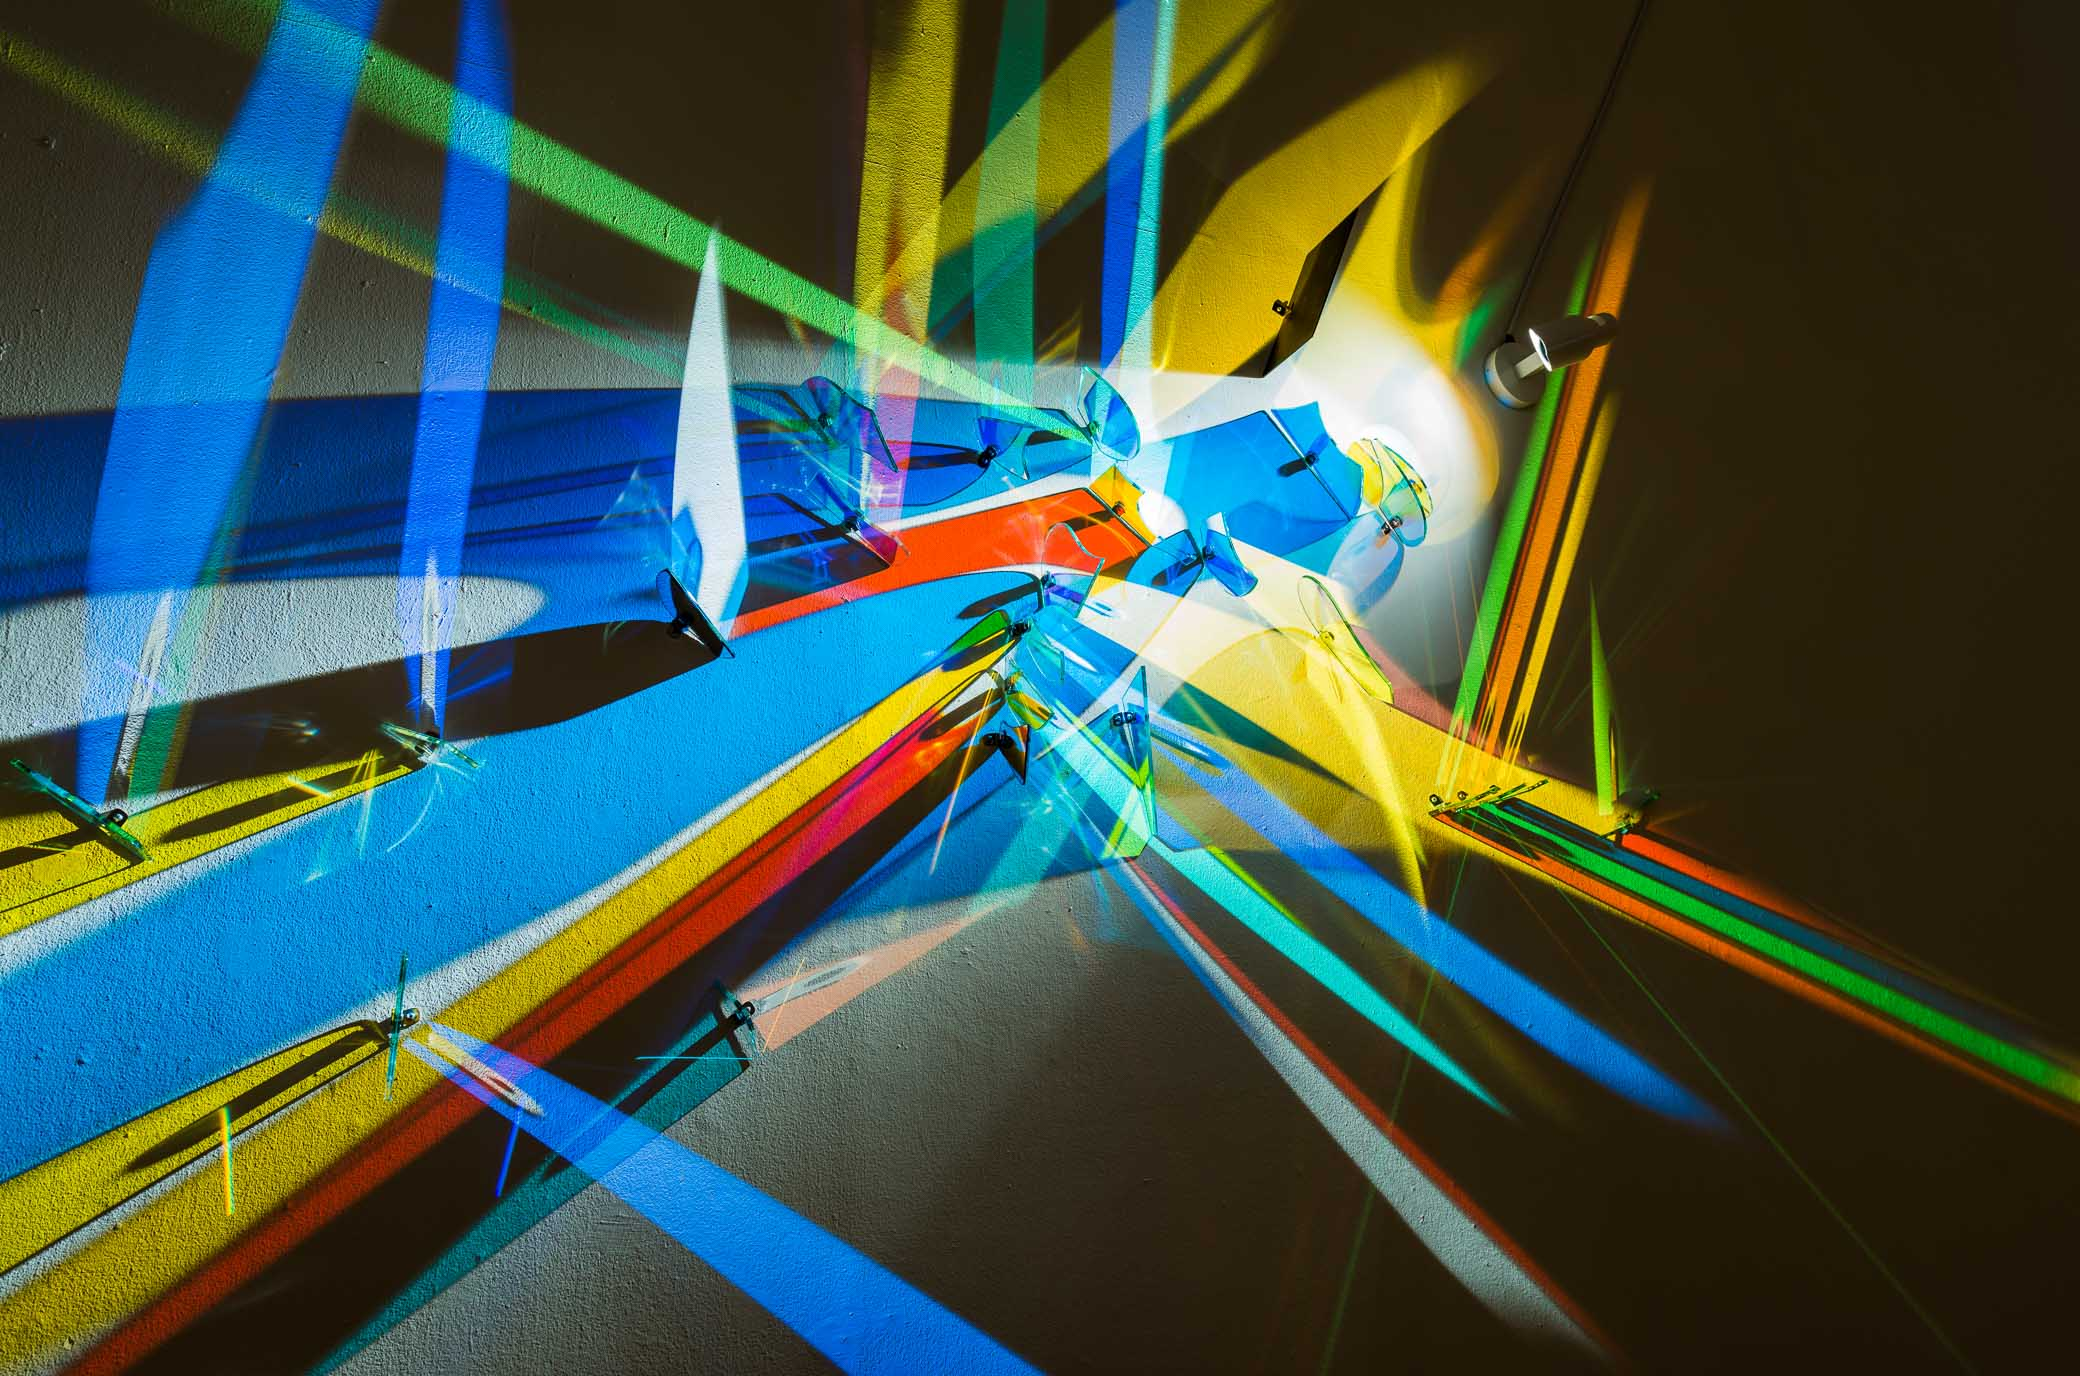 Stephen Knapp, Light painting, Polk Museum of Art